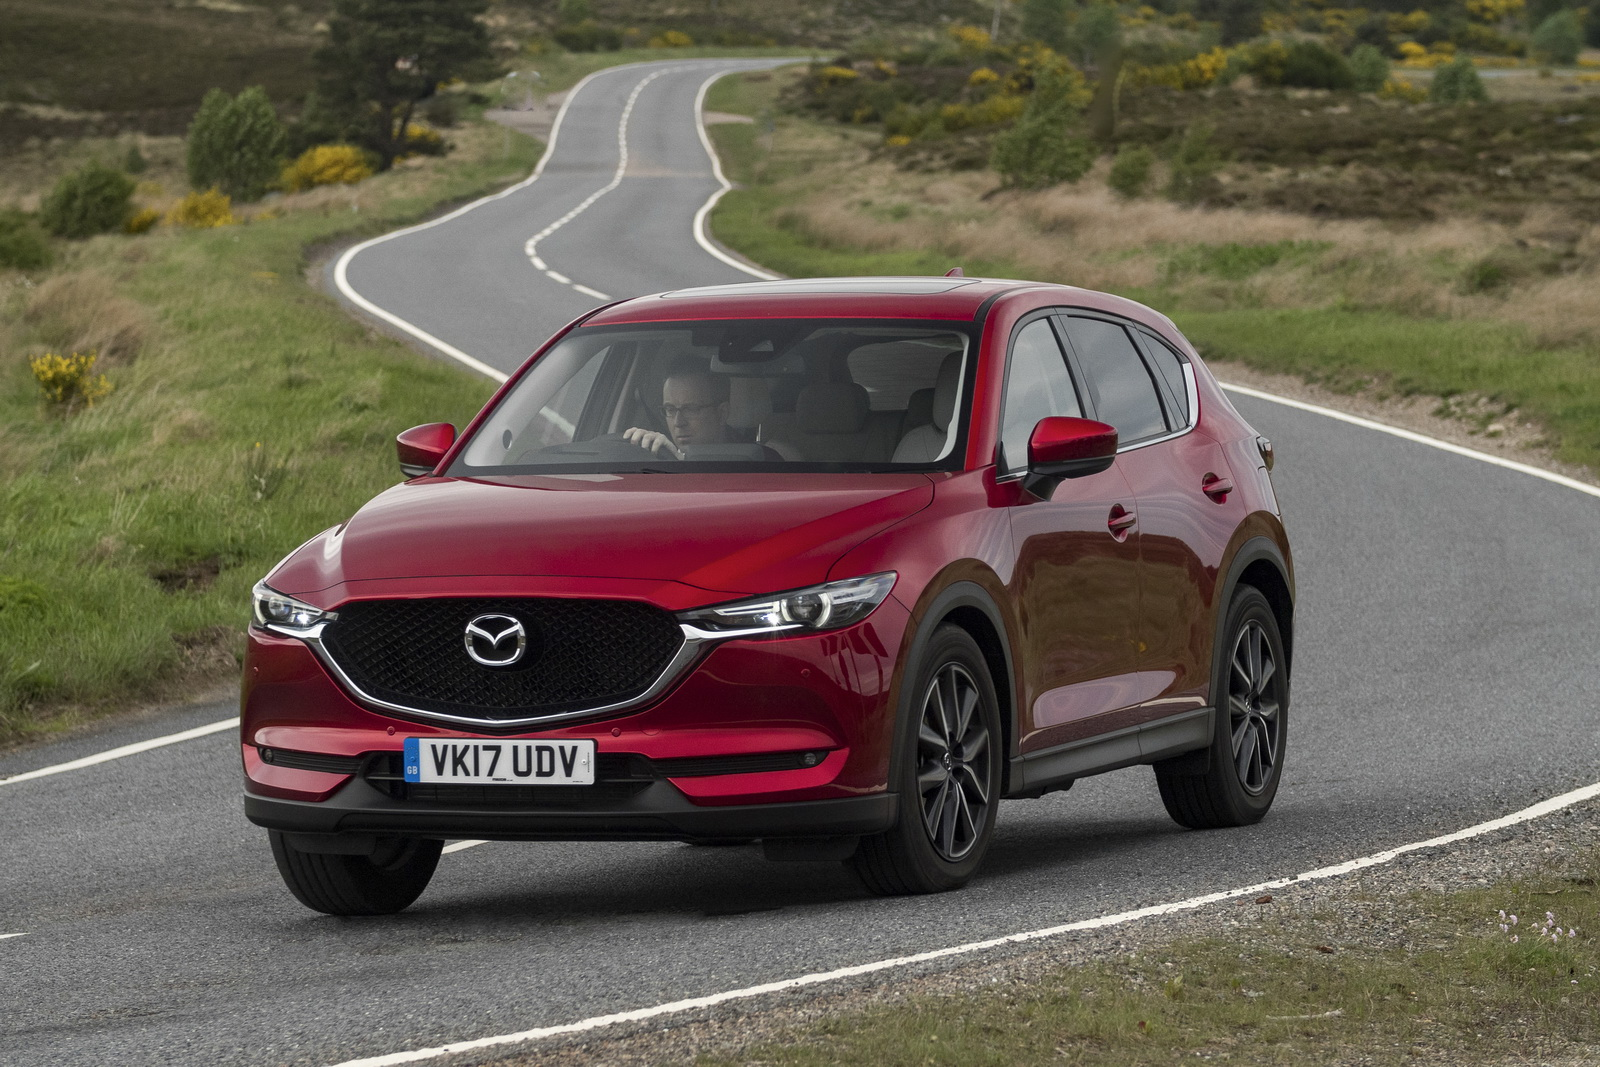 2017 mazda cx 5 priced from 23 695 in the uk 46 pics. Black Bedroom Furniture Sets. Home Design Ideas